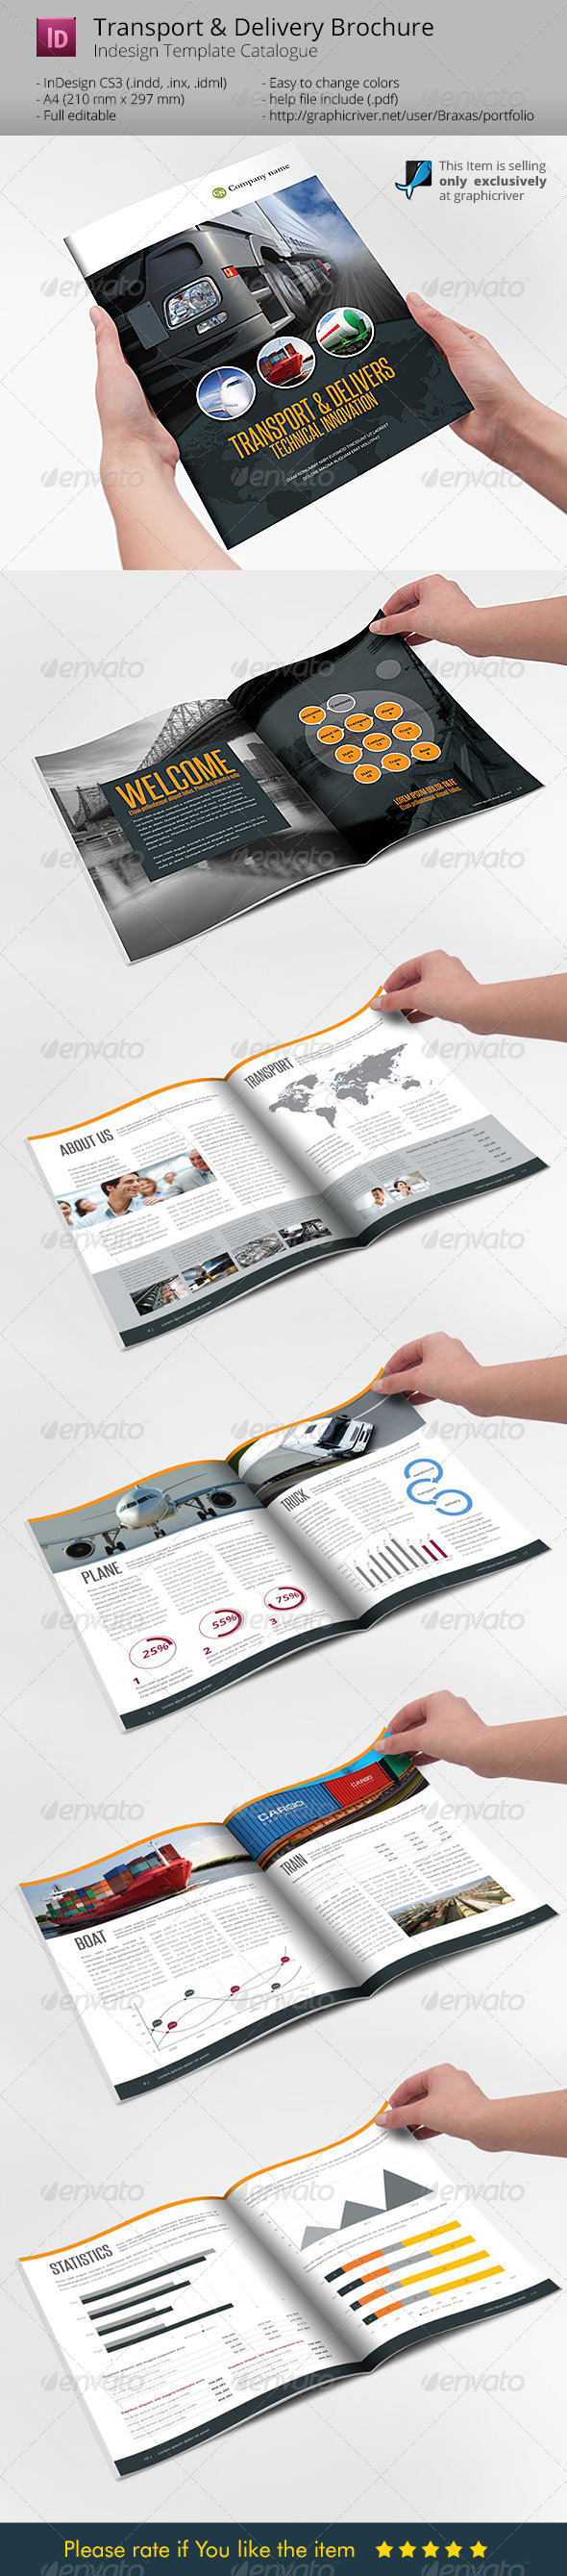 Transport & Delivery Indesign Template Brochure - Catalogs Brochures